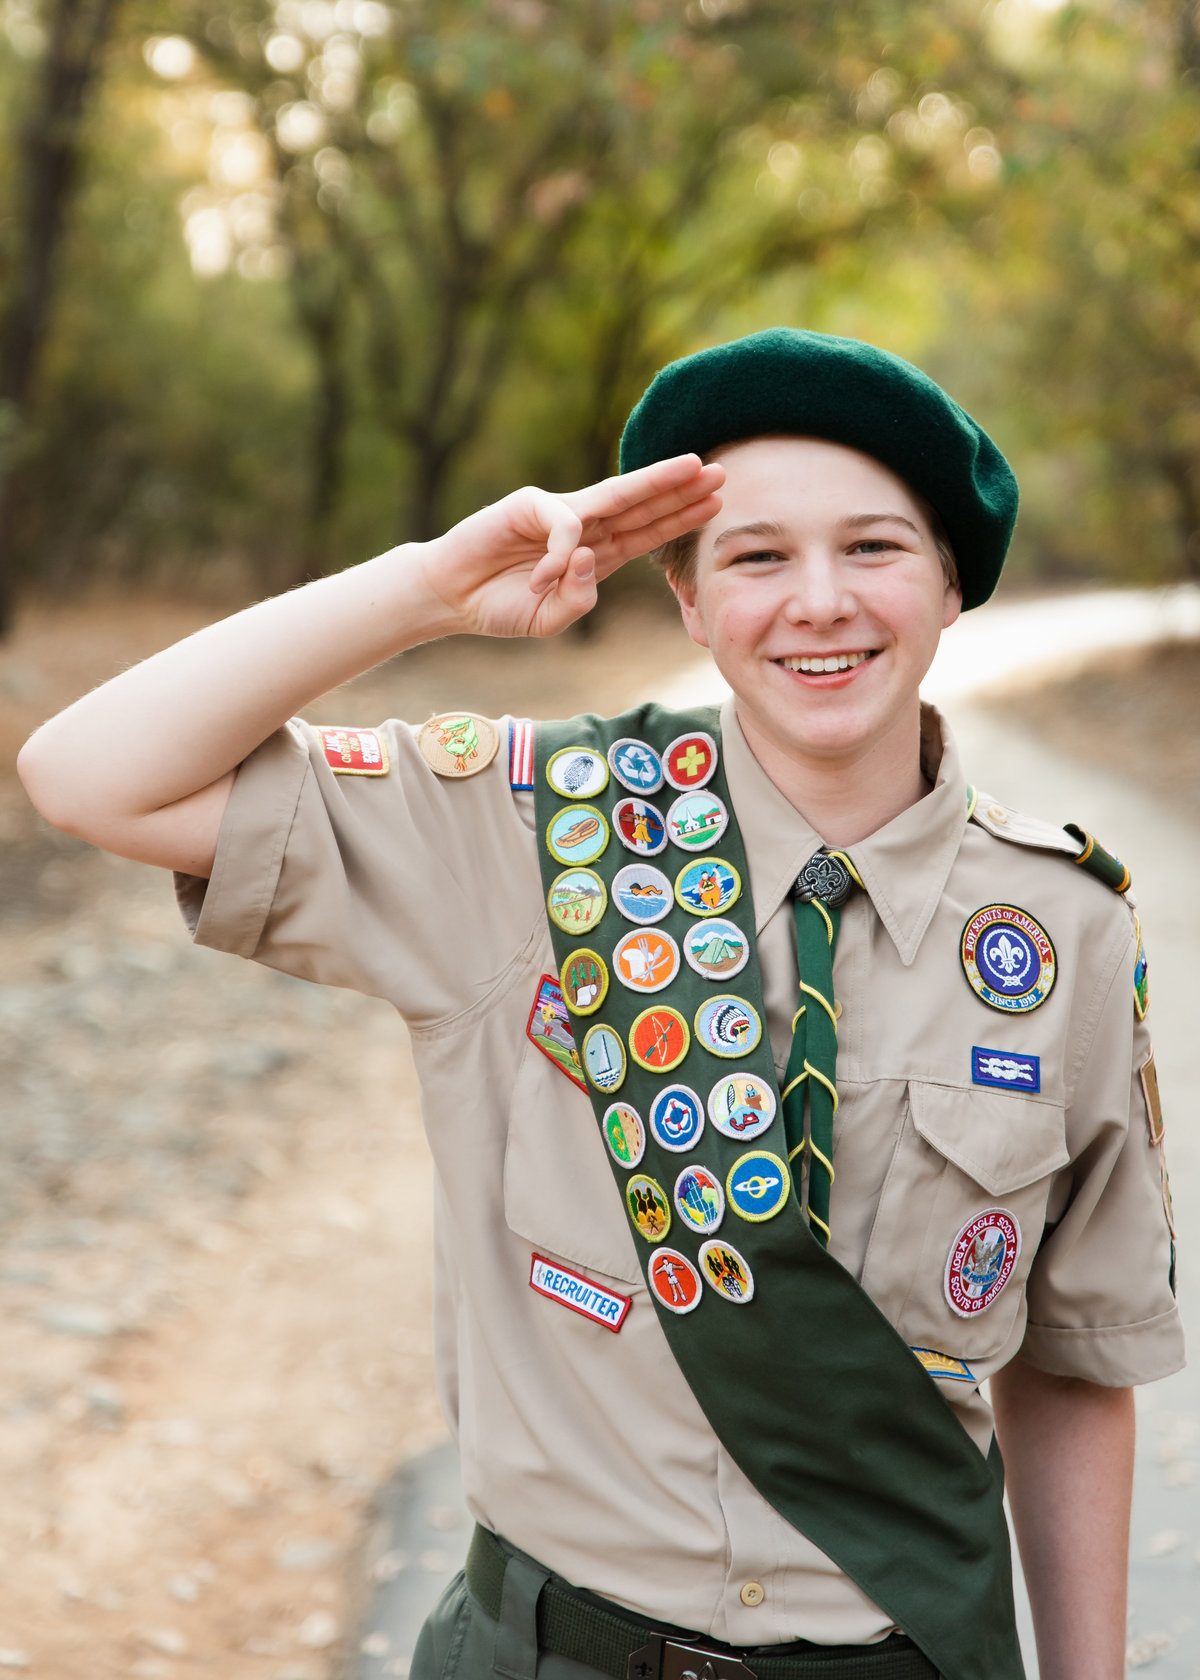 senior teen boy in scout uniform saluting